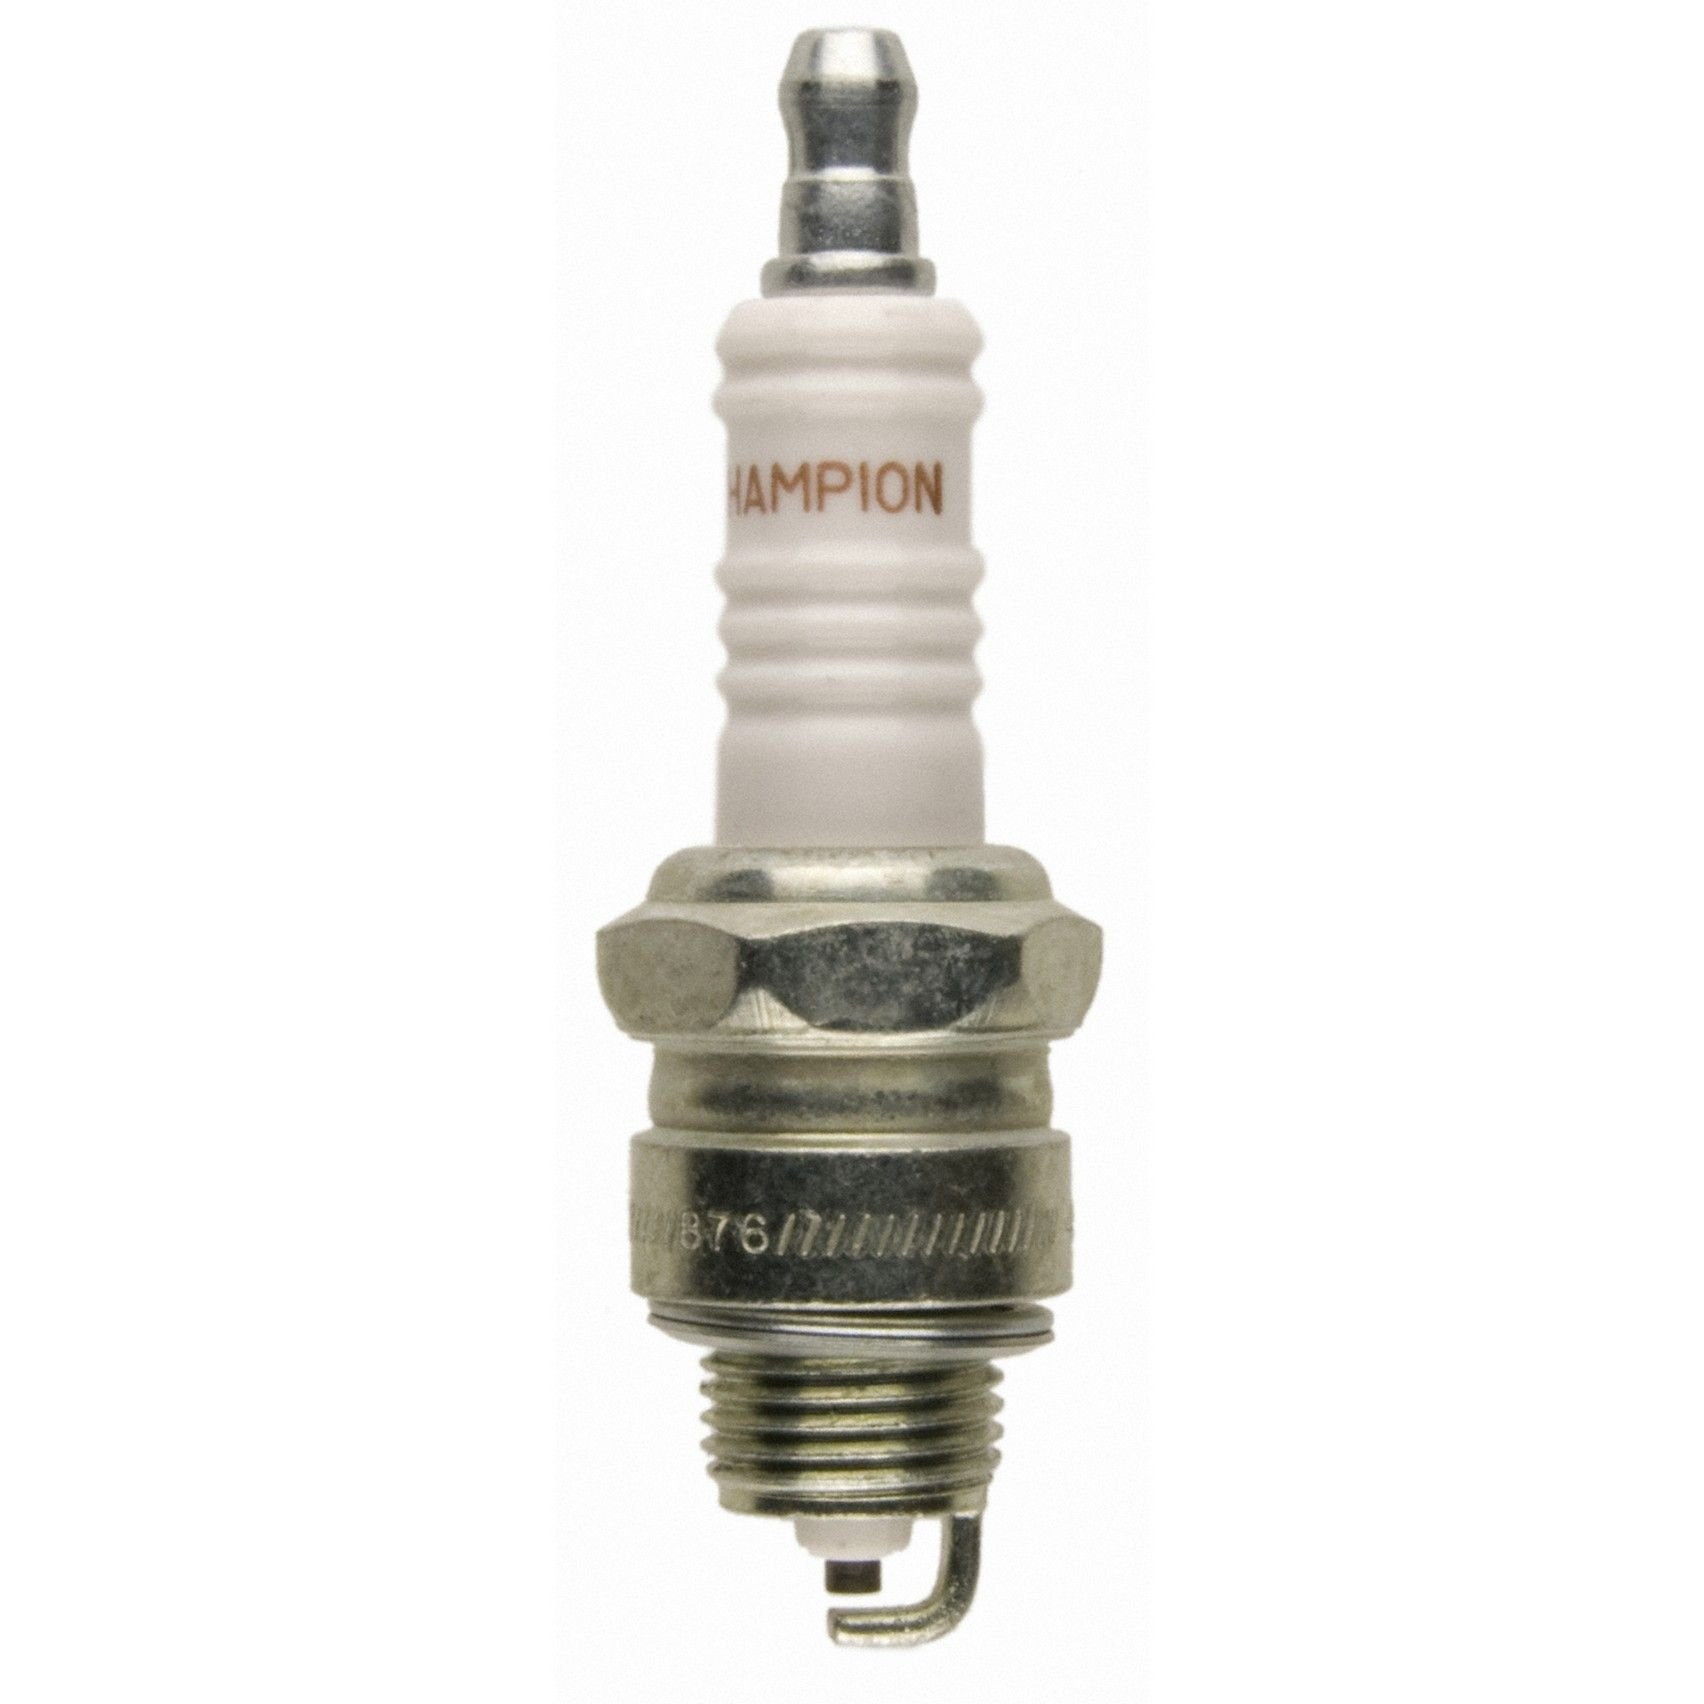 Cadillac DeVille Spark Plug Replacement (ACDelco, Accel